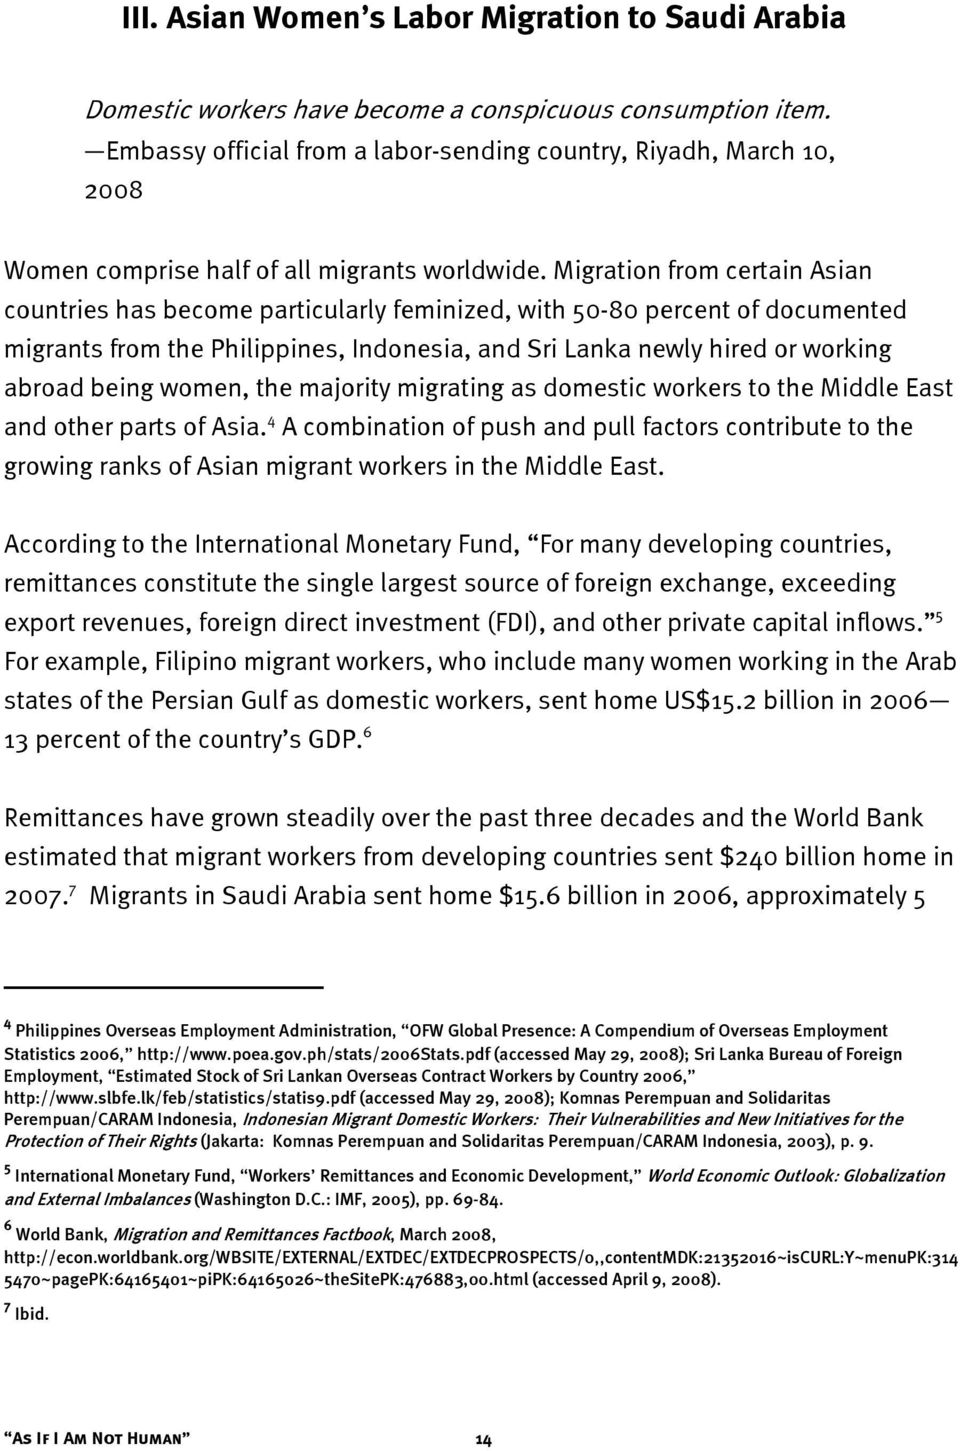 Migration from certain Asian countries has become particularly feminized, with 50-80 percent of documented migrants from the Philippines, Indonesia, and Sri Lanka newly hired or working abroad being